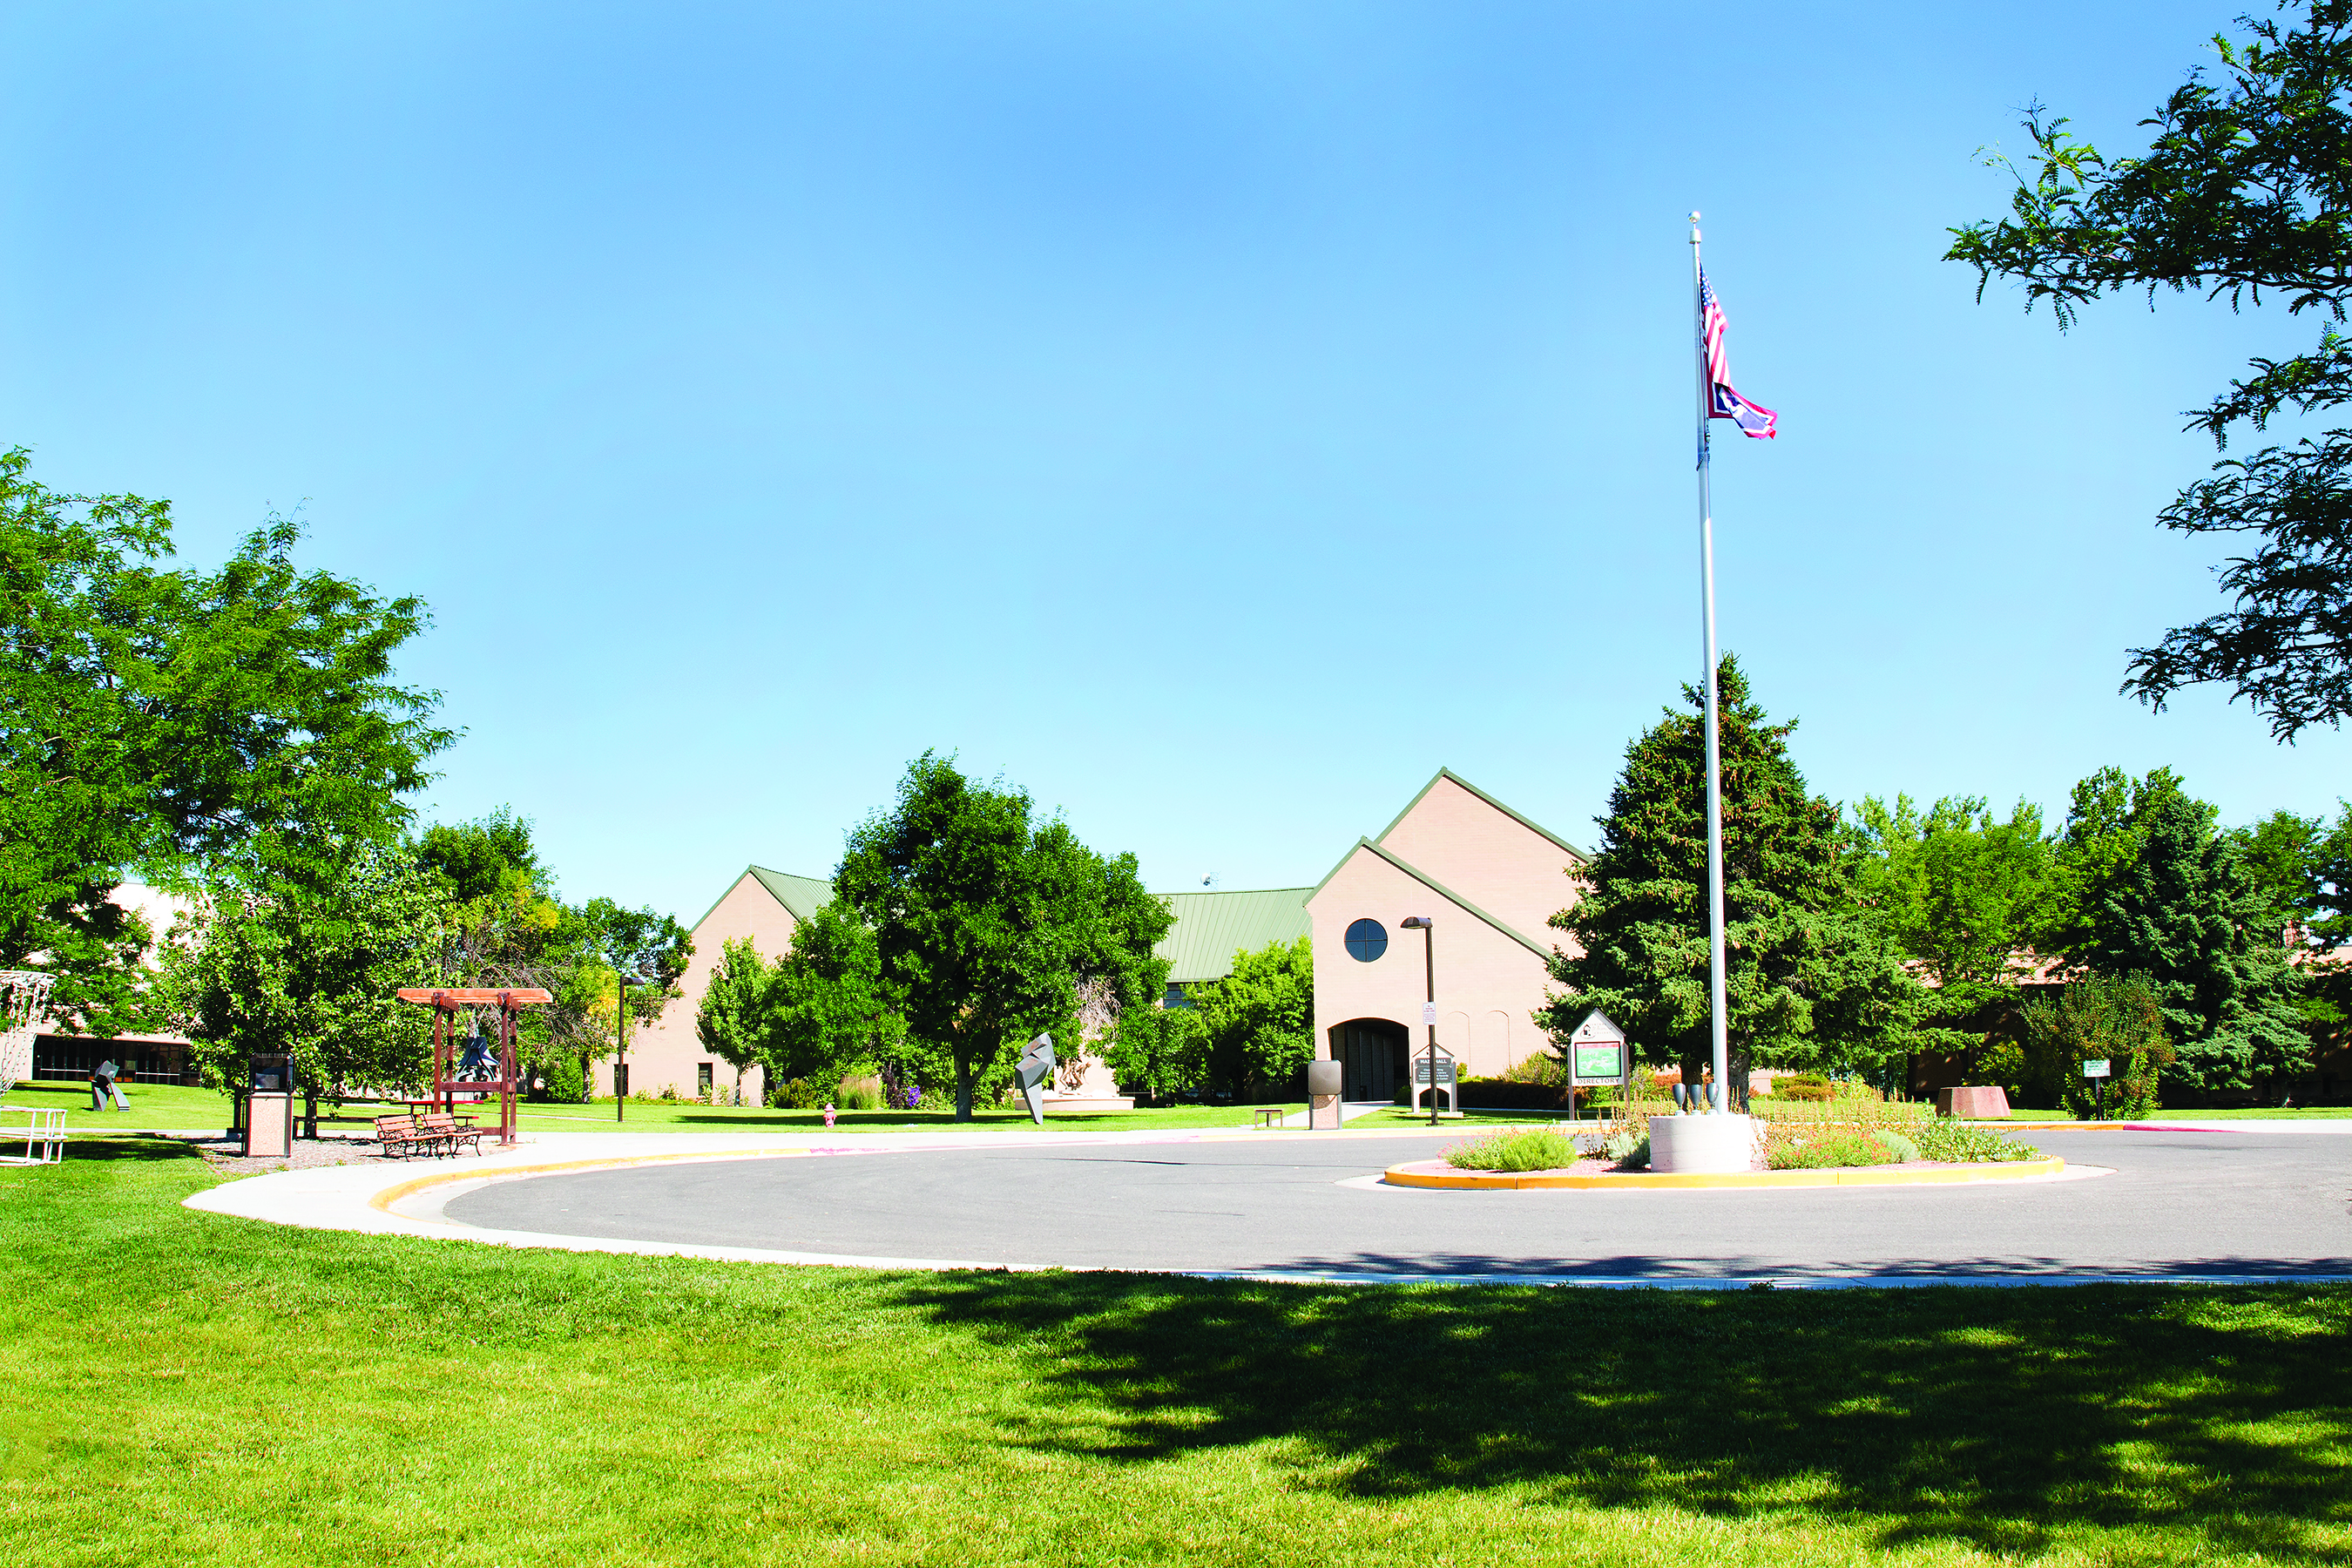 Main Building, flag pole, and trees at CWC